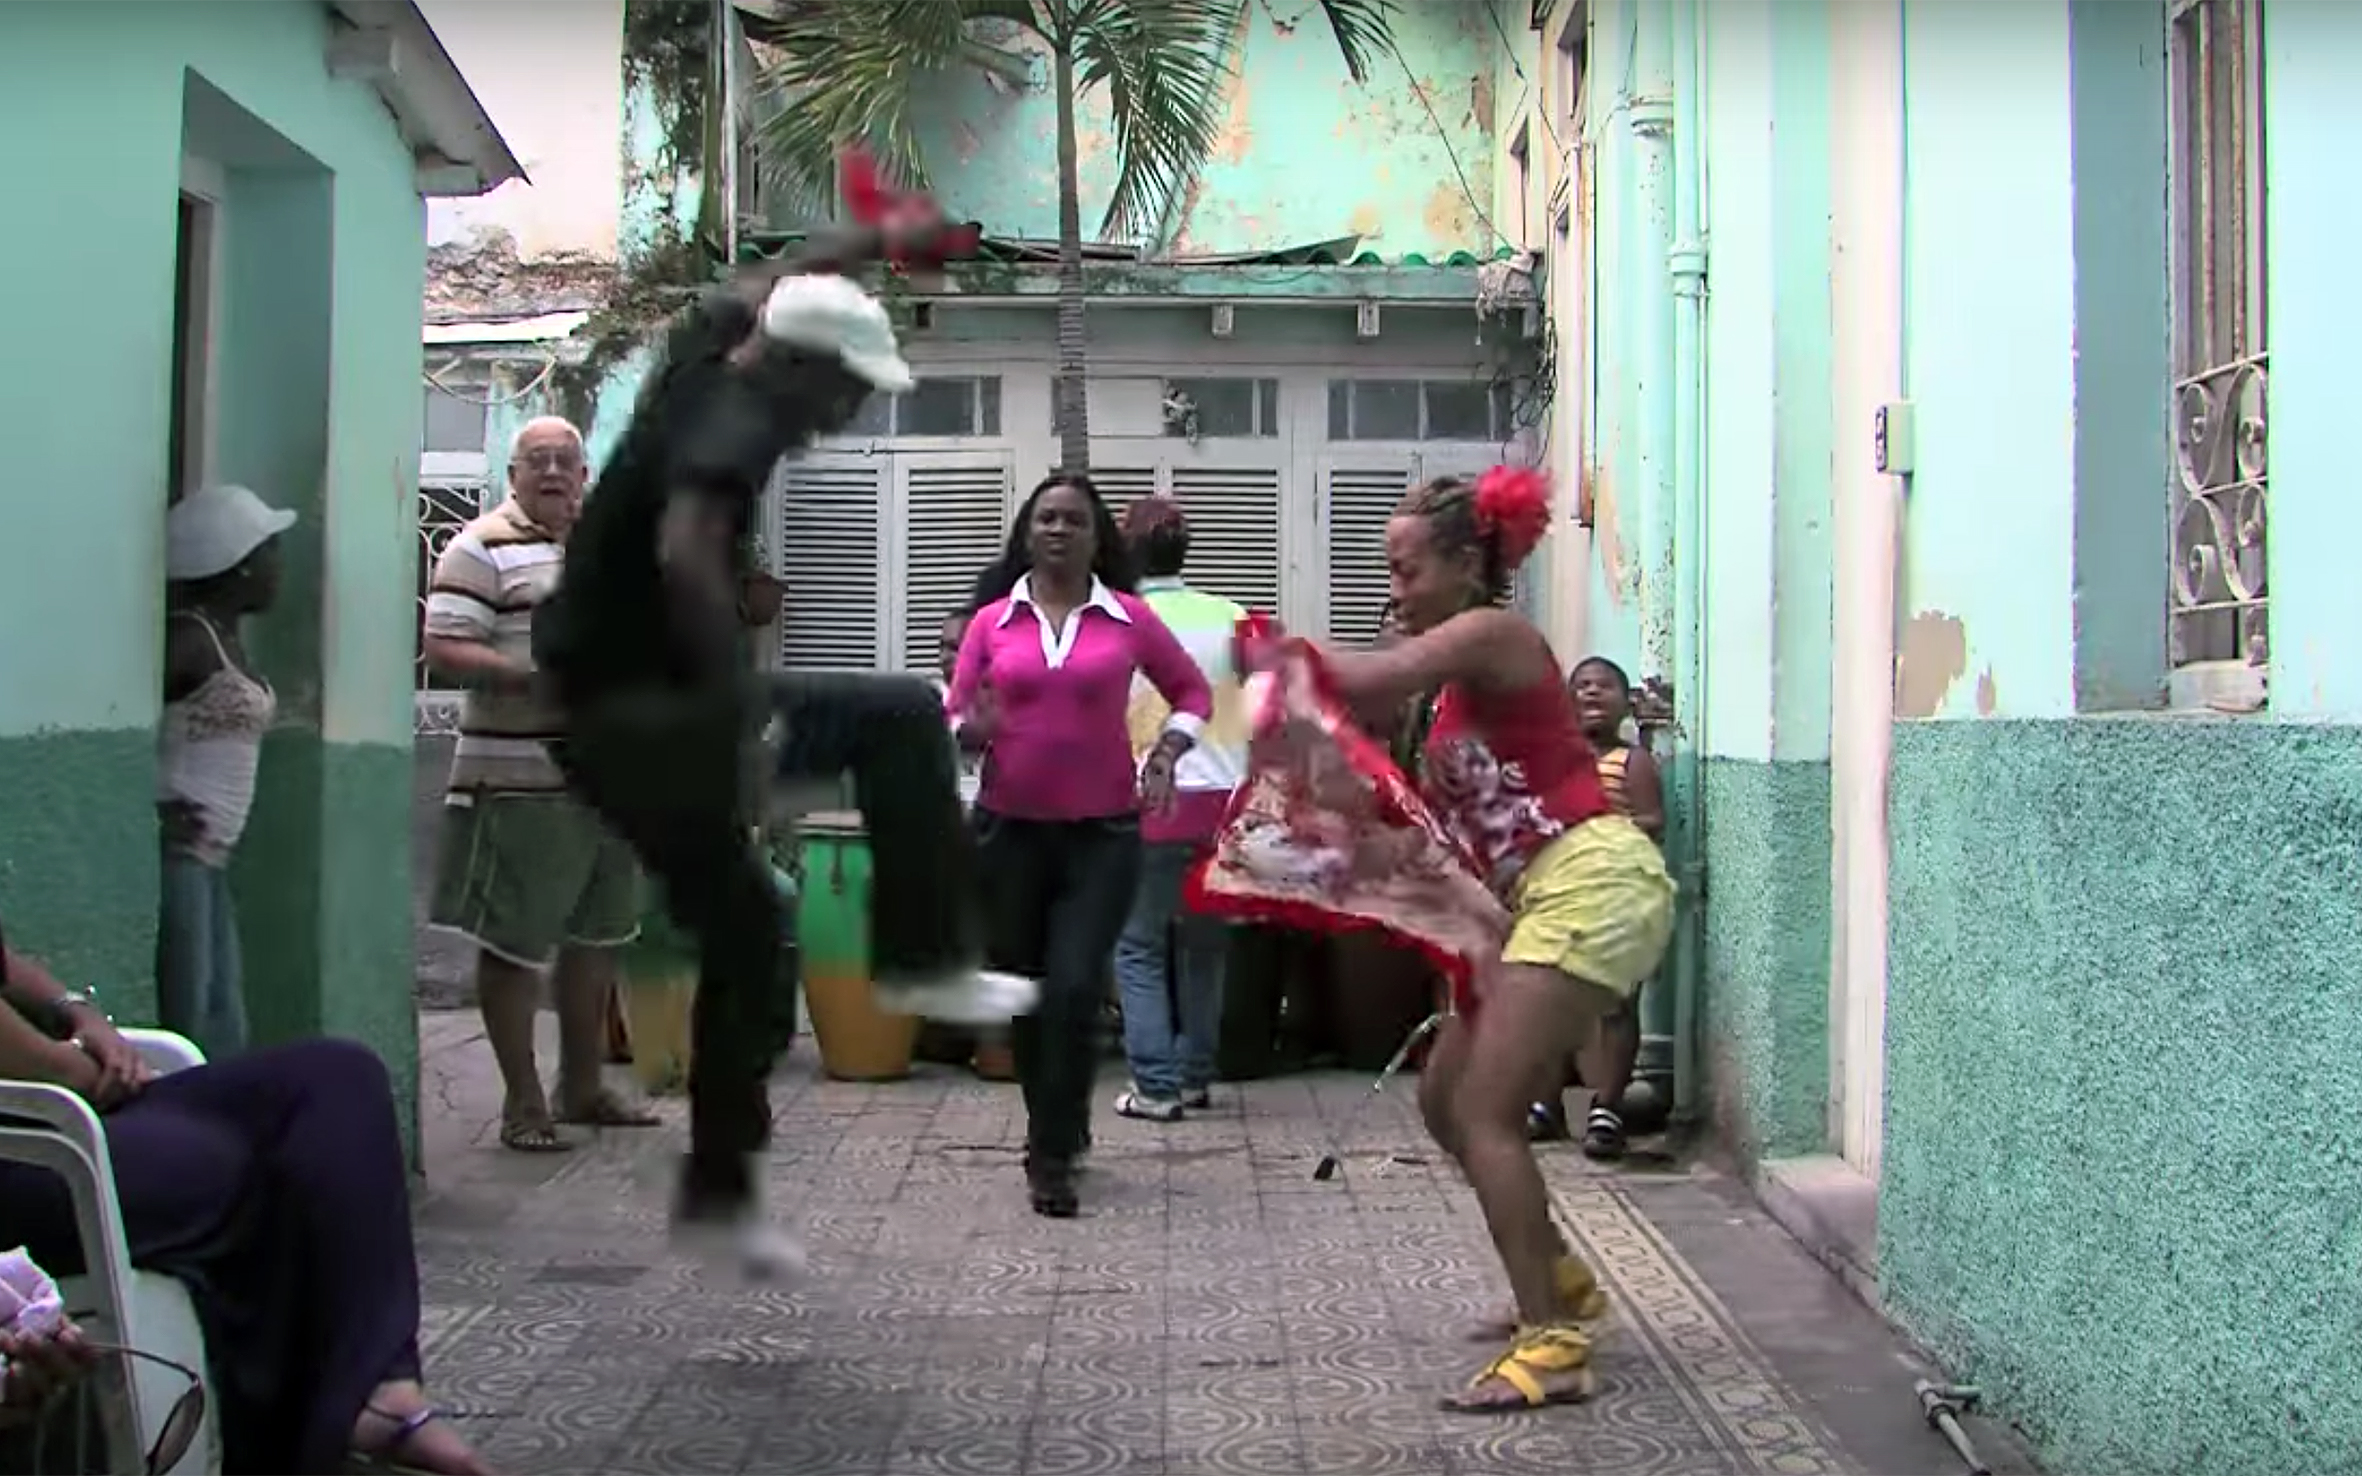 343.Guaguancó / Cuba - Guaguancó is a Cuban couple dance of sexual competition between the male and female. The male periodically attempts to